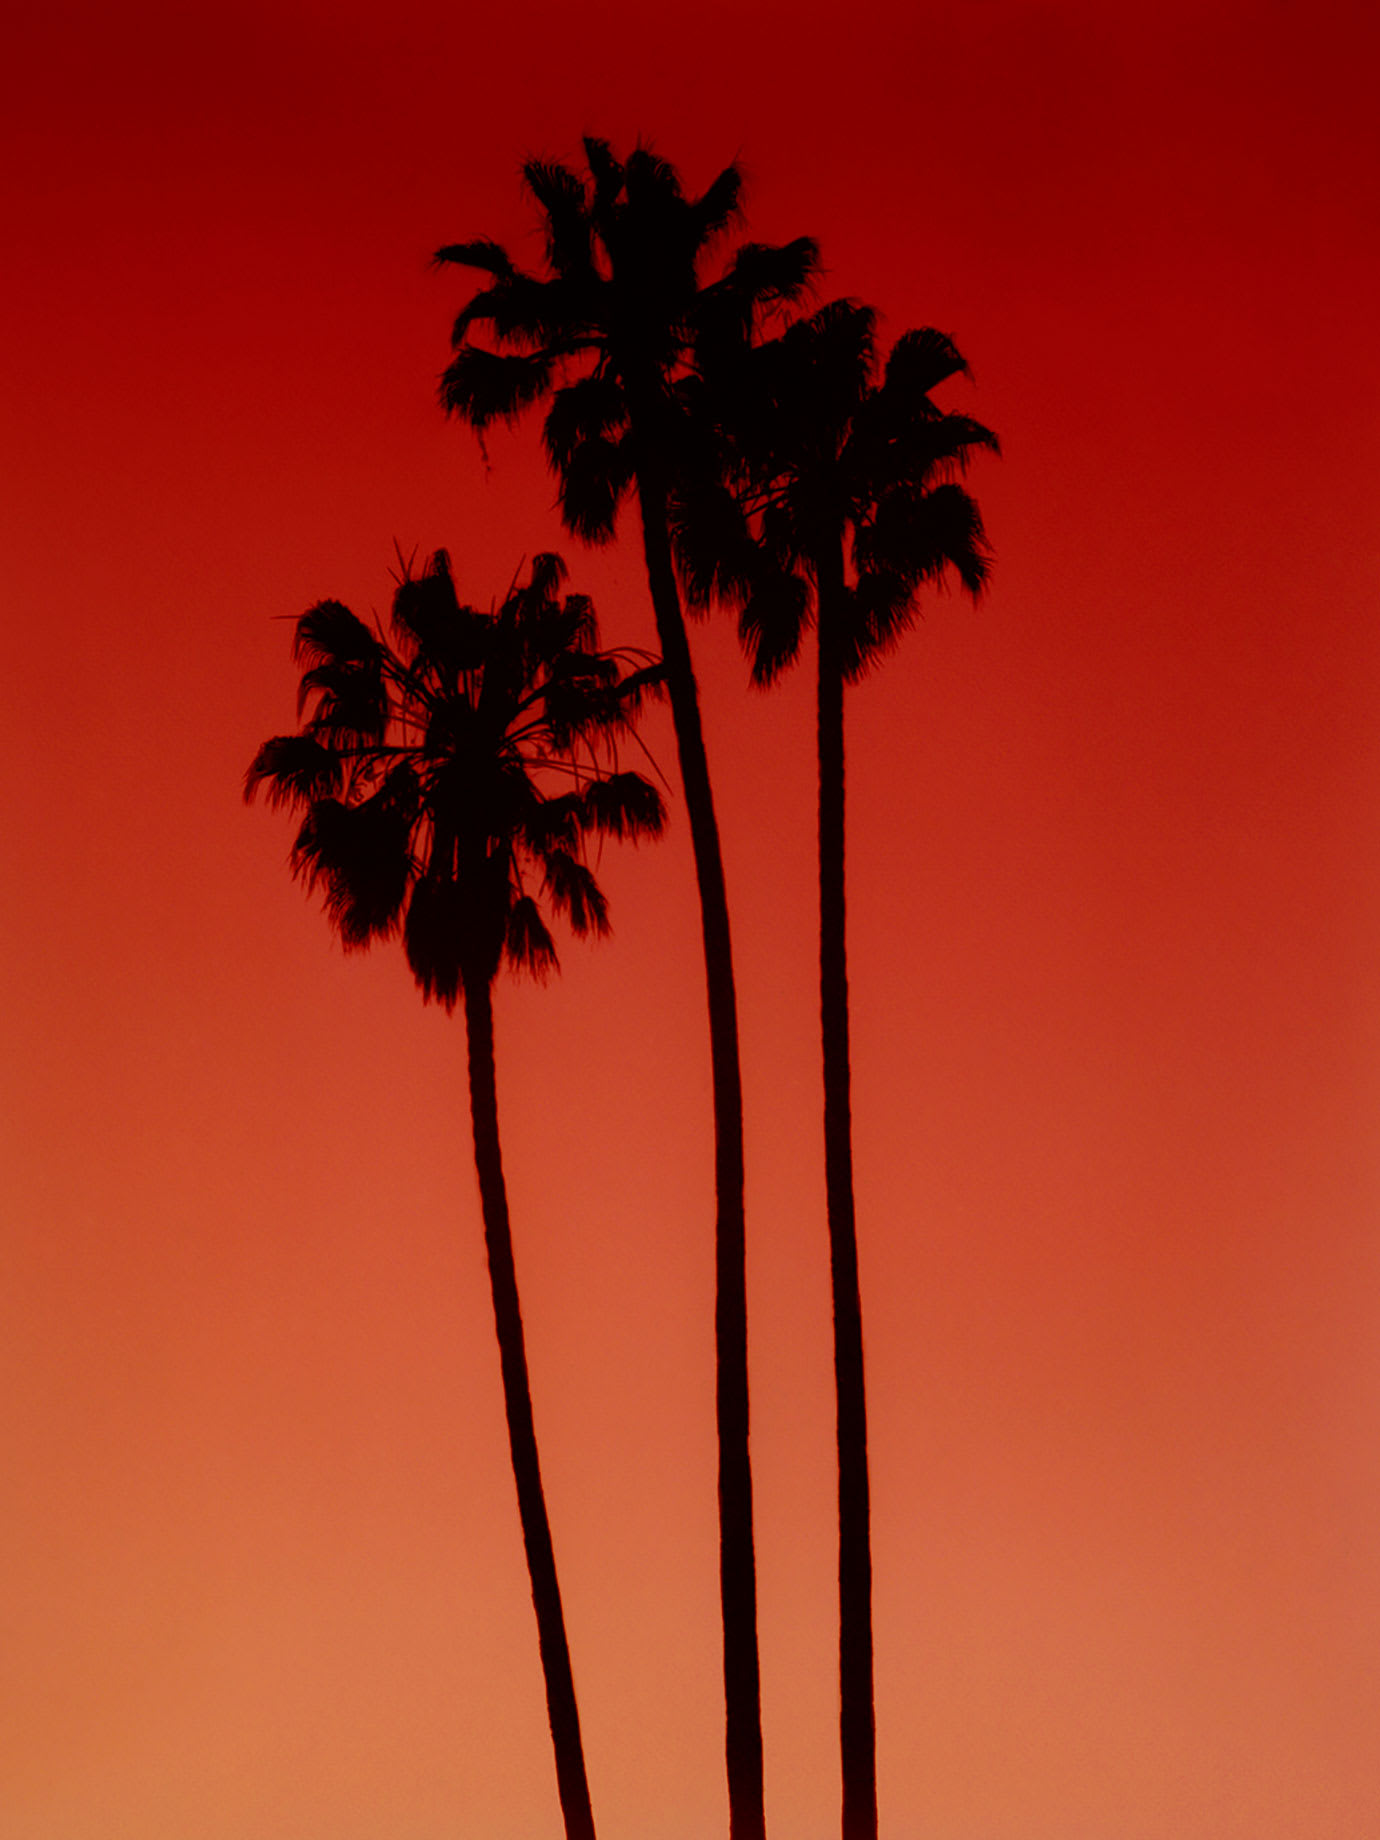 The silhouettes of three palm trees with a red sky behind them.